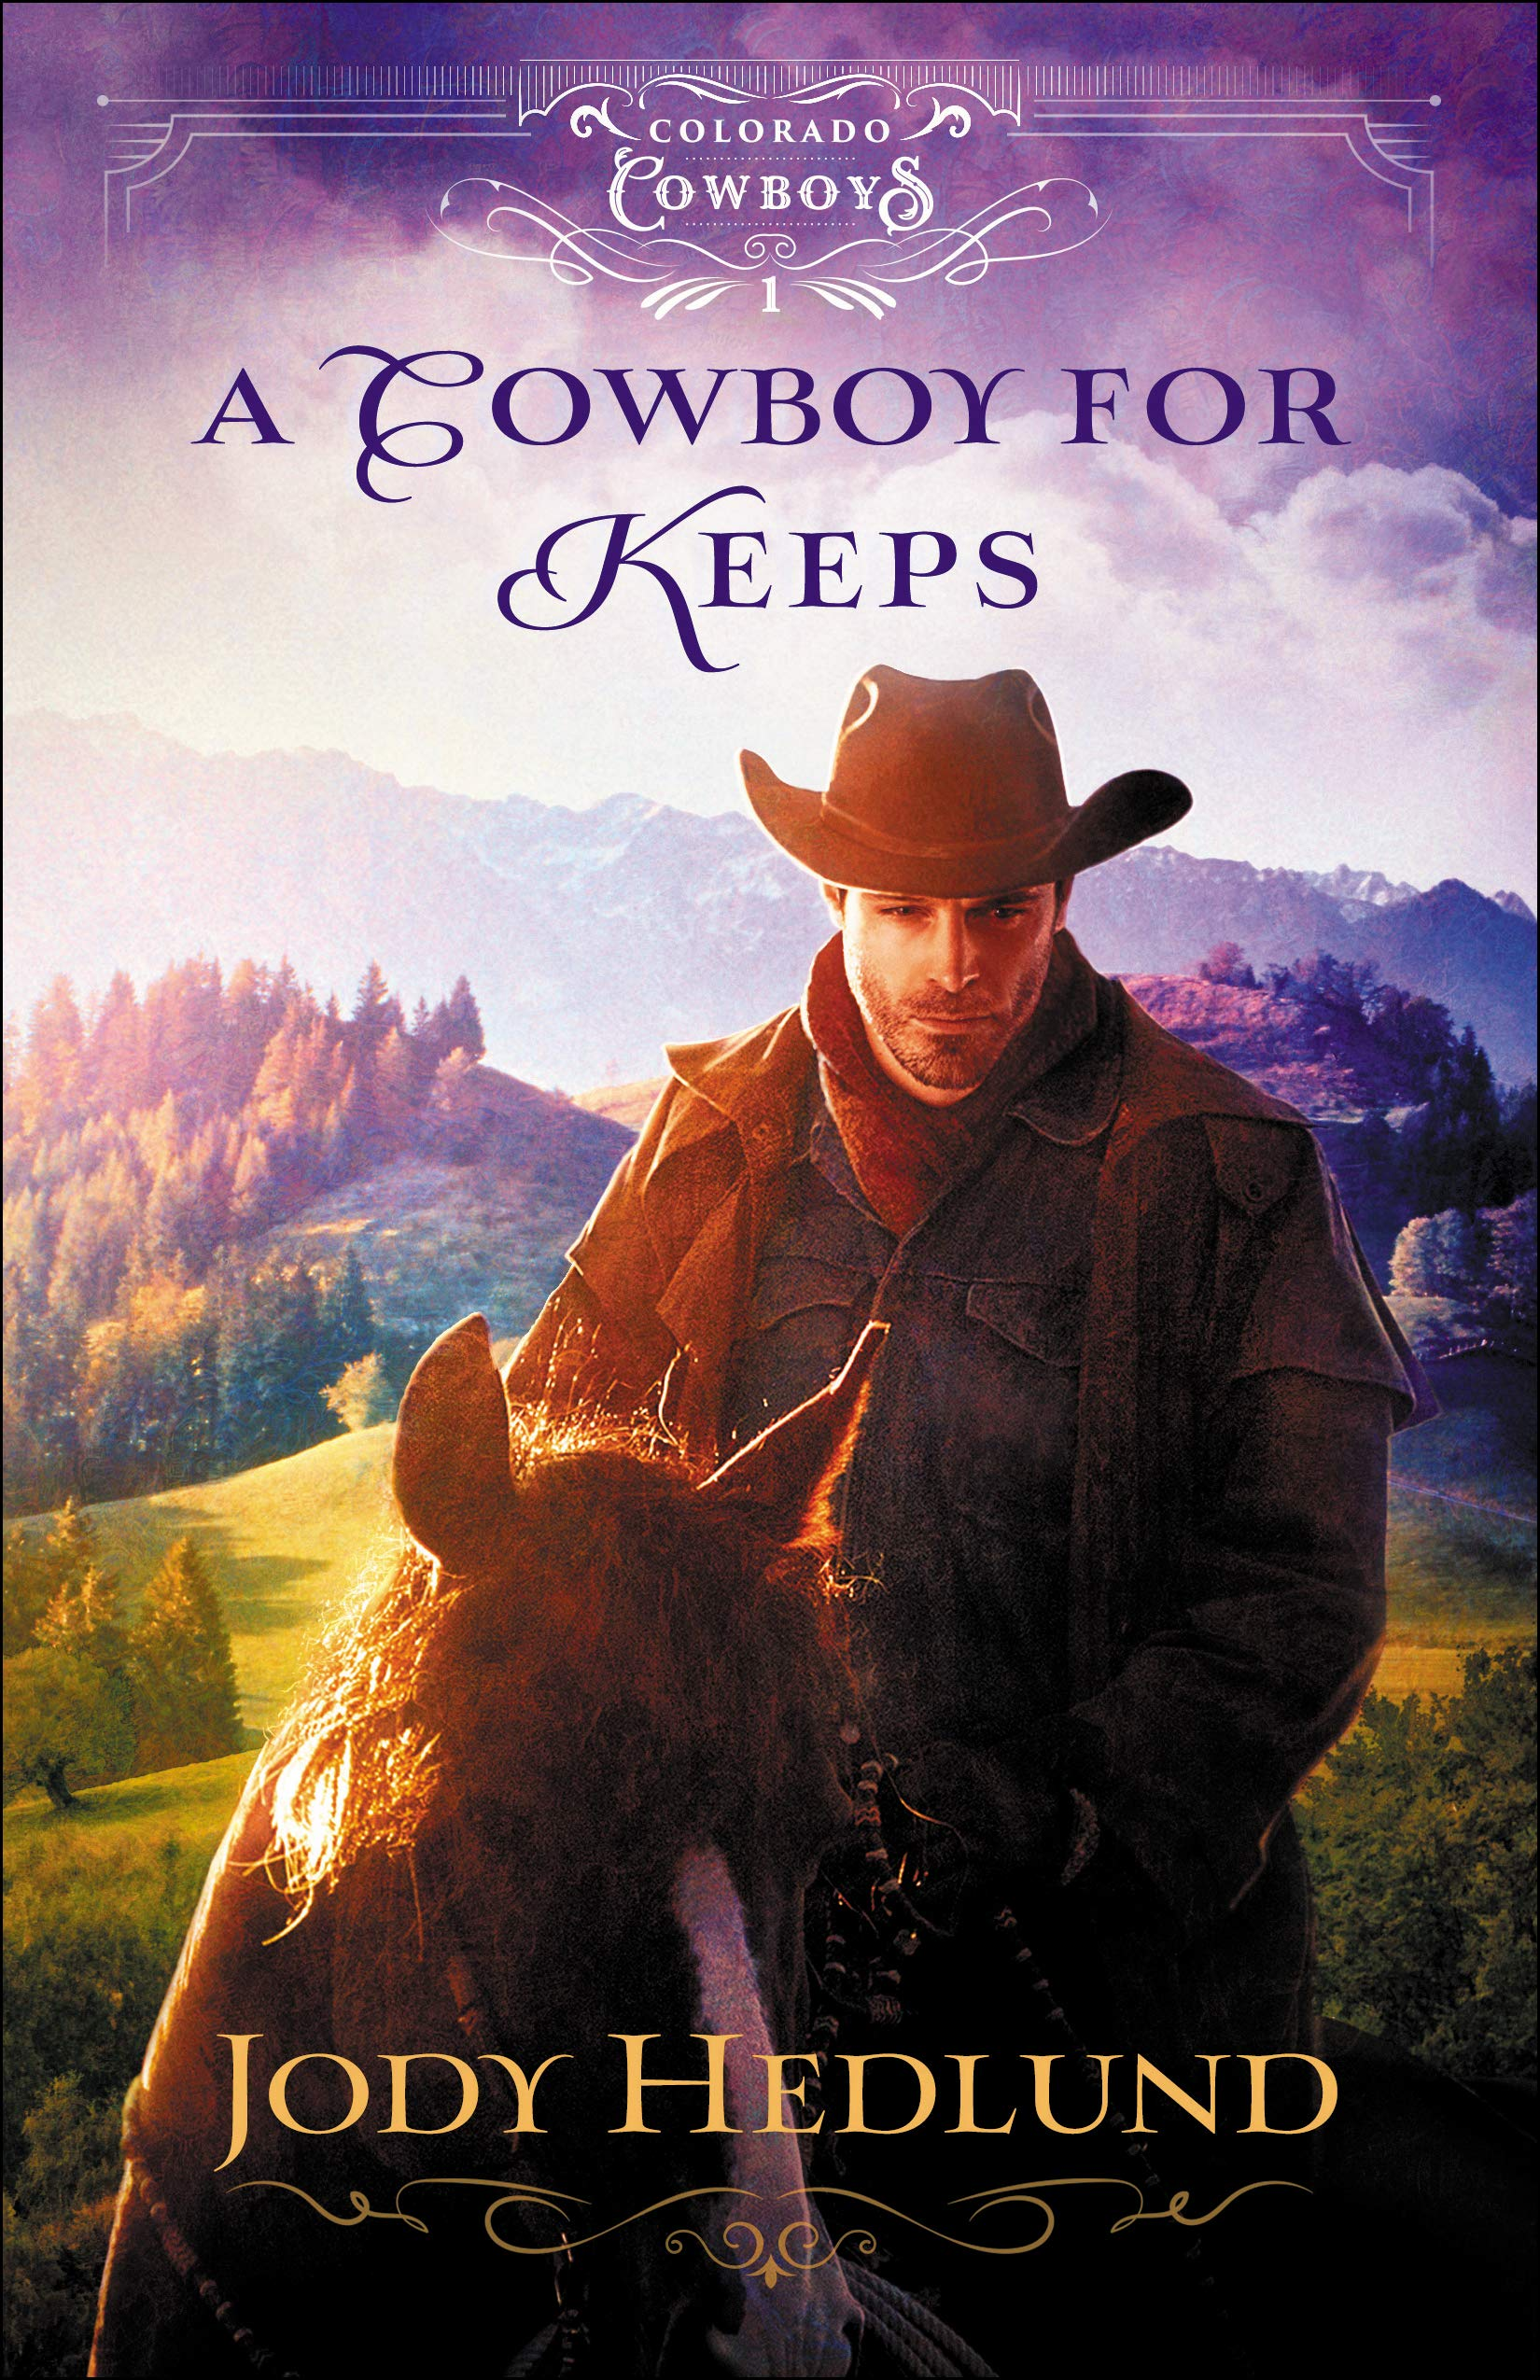 A COWBOY FOR KEEPS by Jody Hudlund